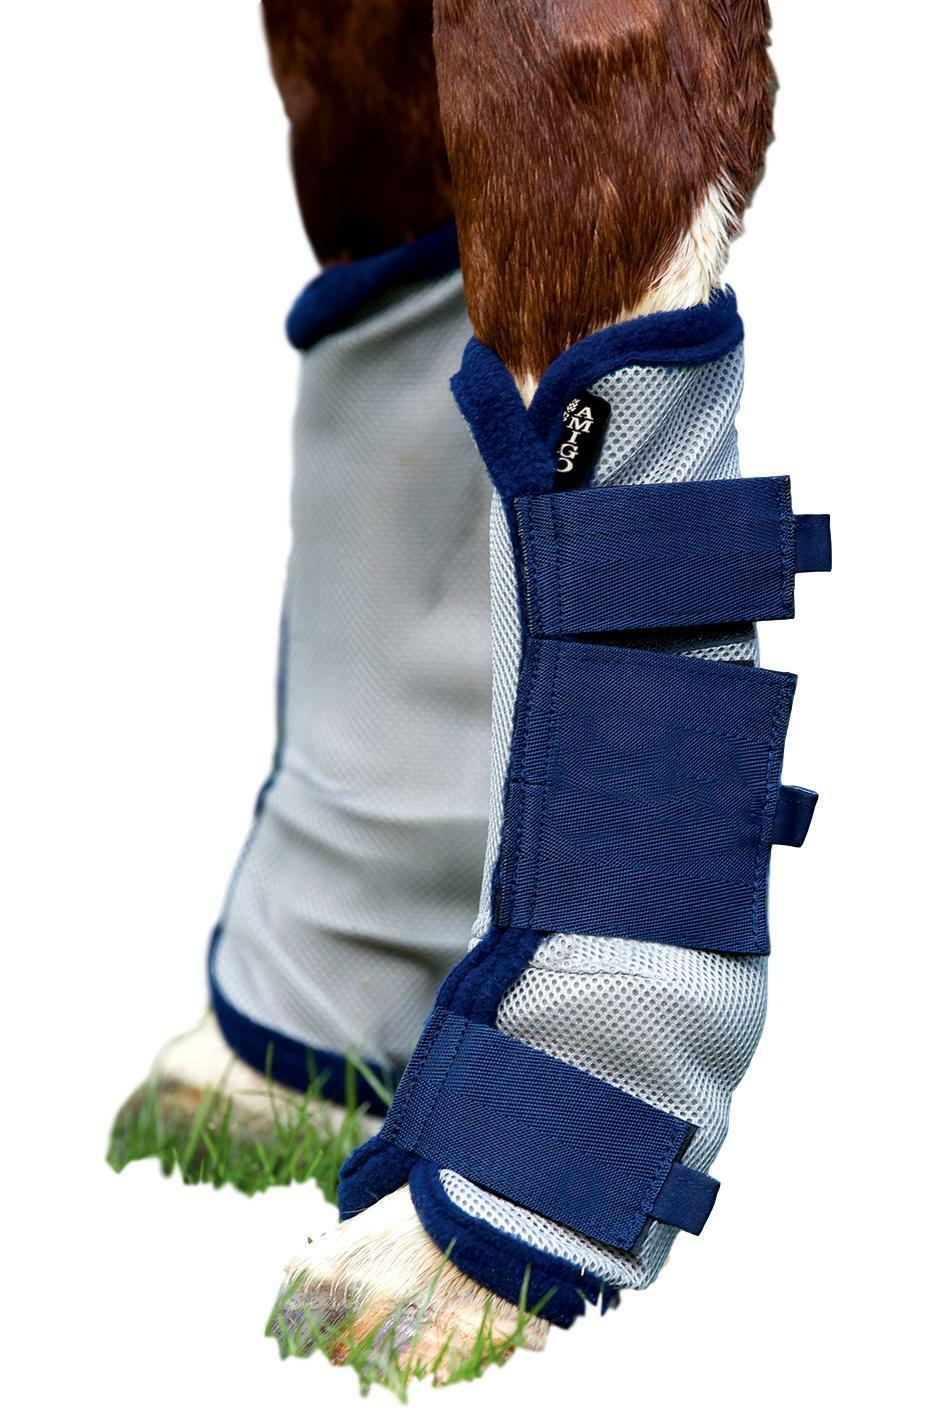 Horseware Ireland Amigo Fly Boots with Airmesh Fabric Bound in Fleece